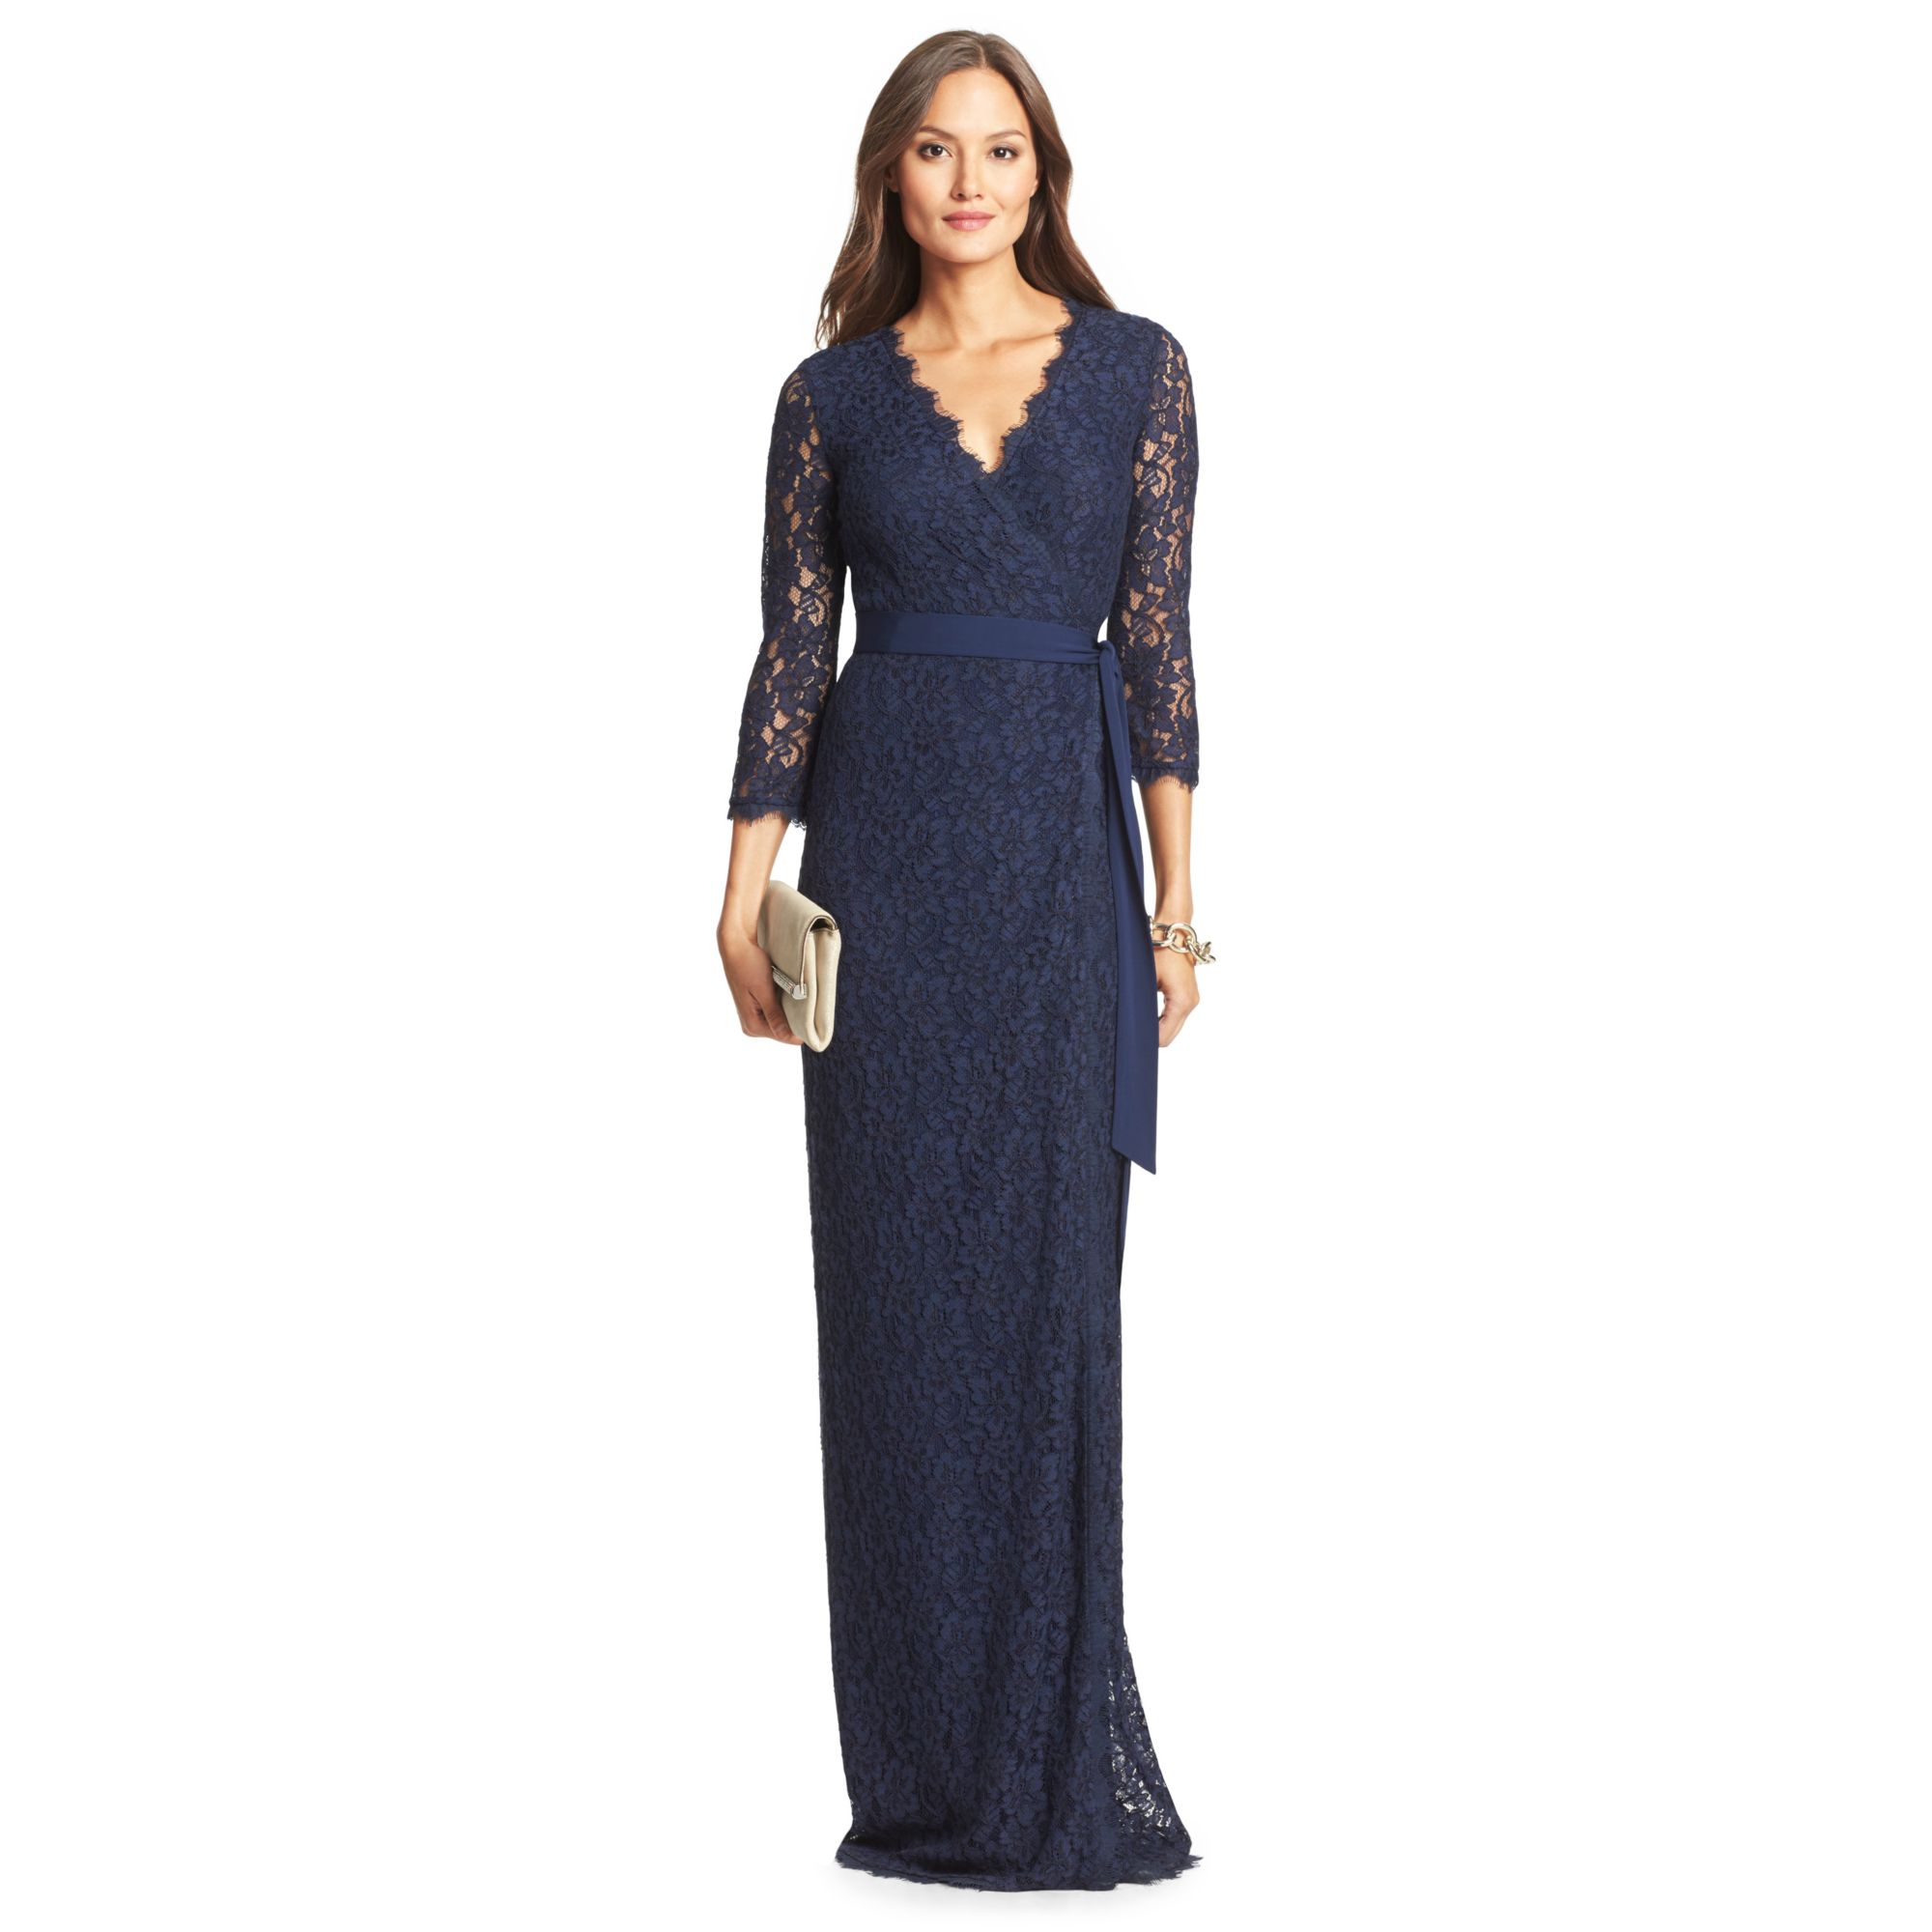 Diane von furstenberg Dvf Julianna Lace Long Wrap Dress in Blue  Lyst